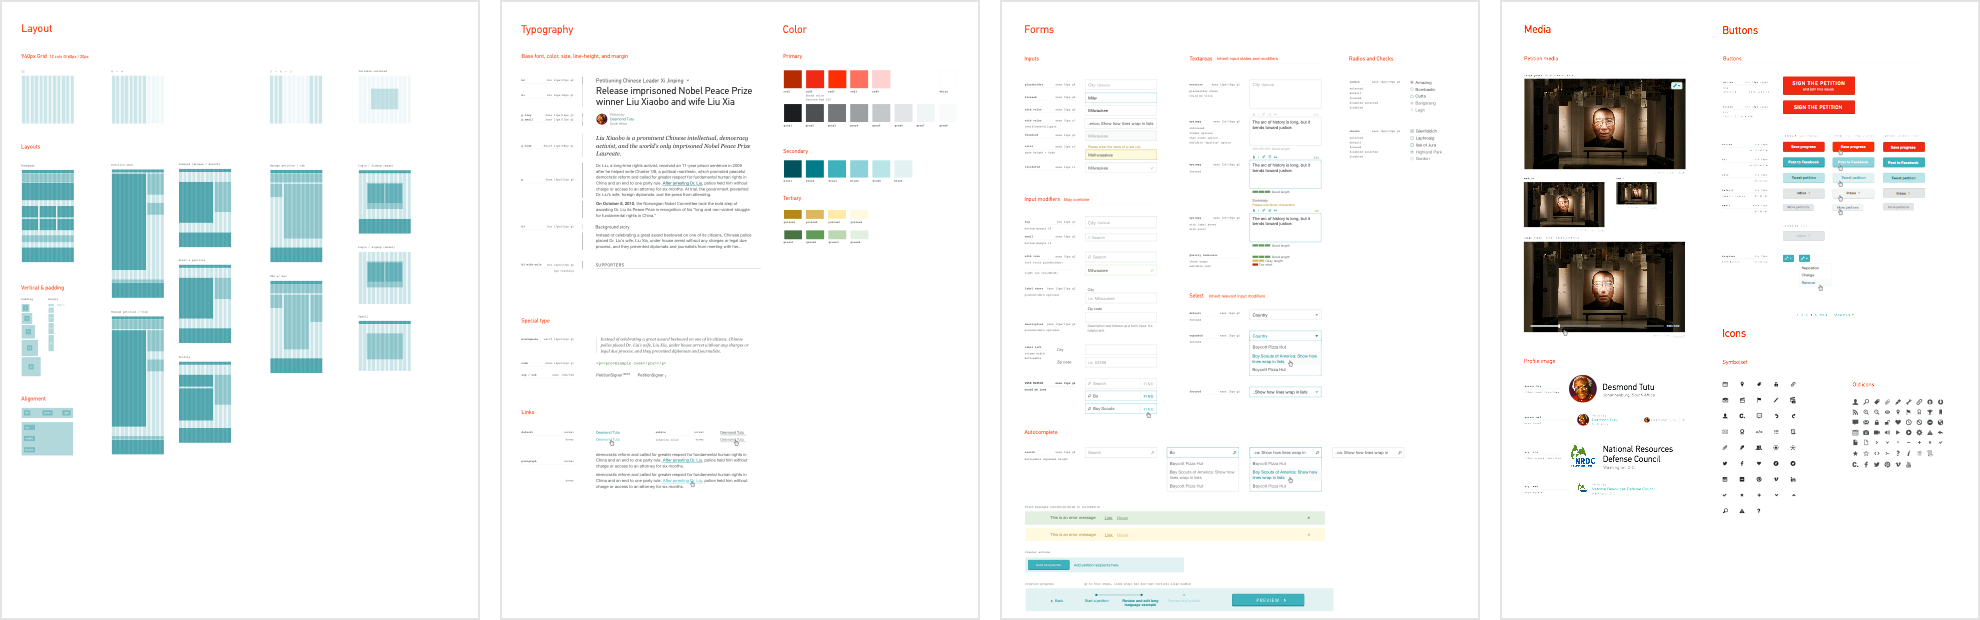 Change.org - live style guide